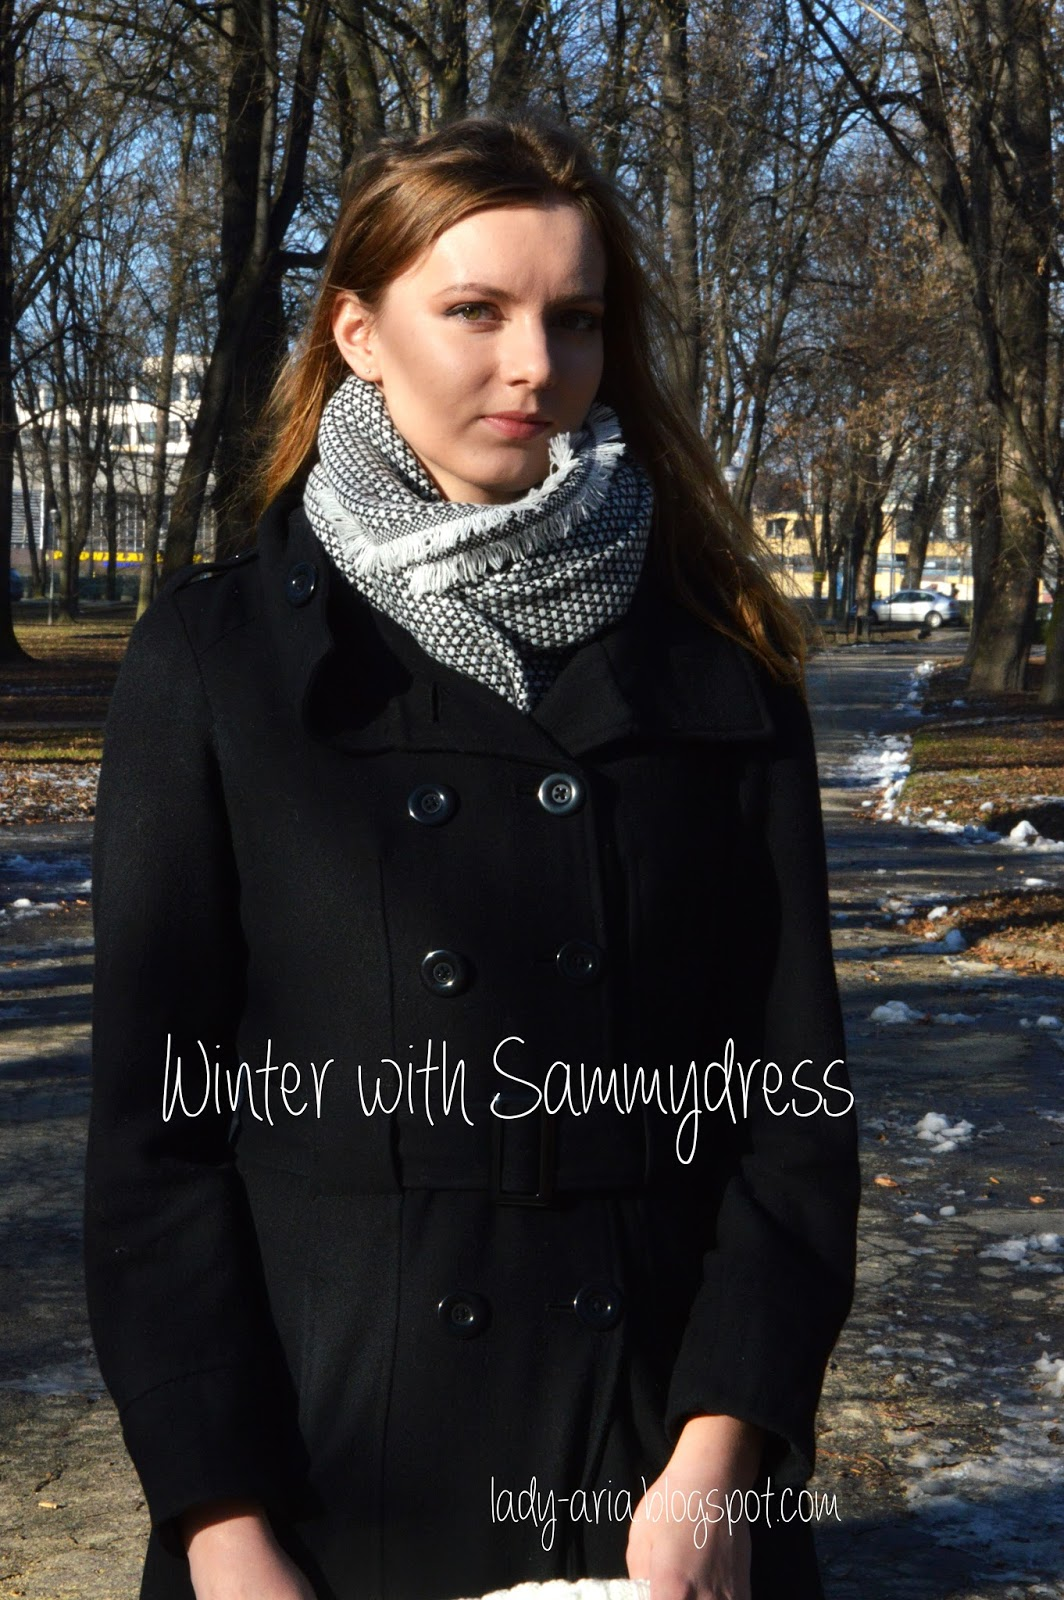 Winter with Sammydress!